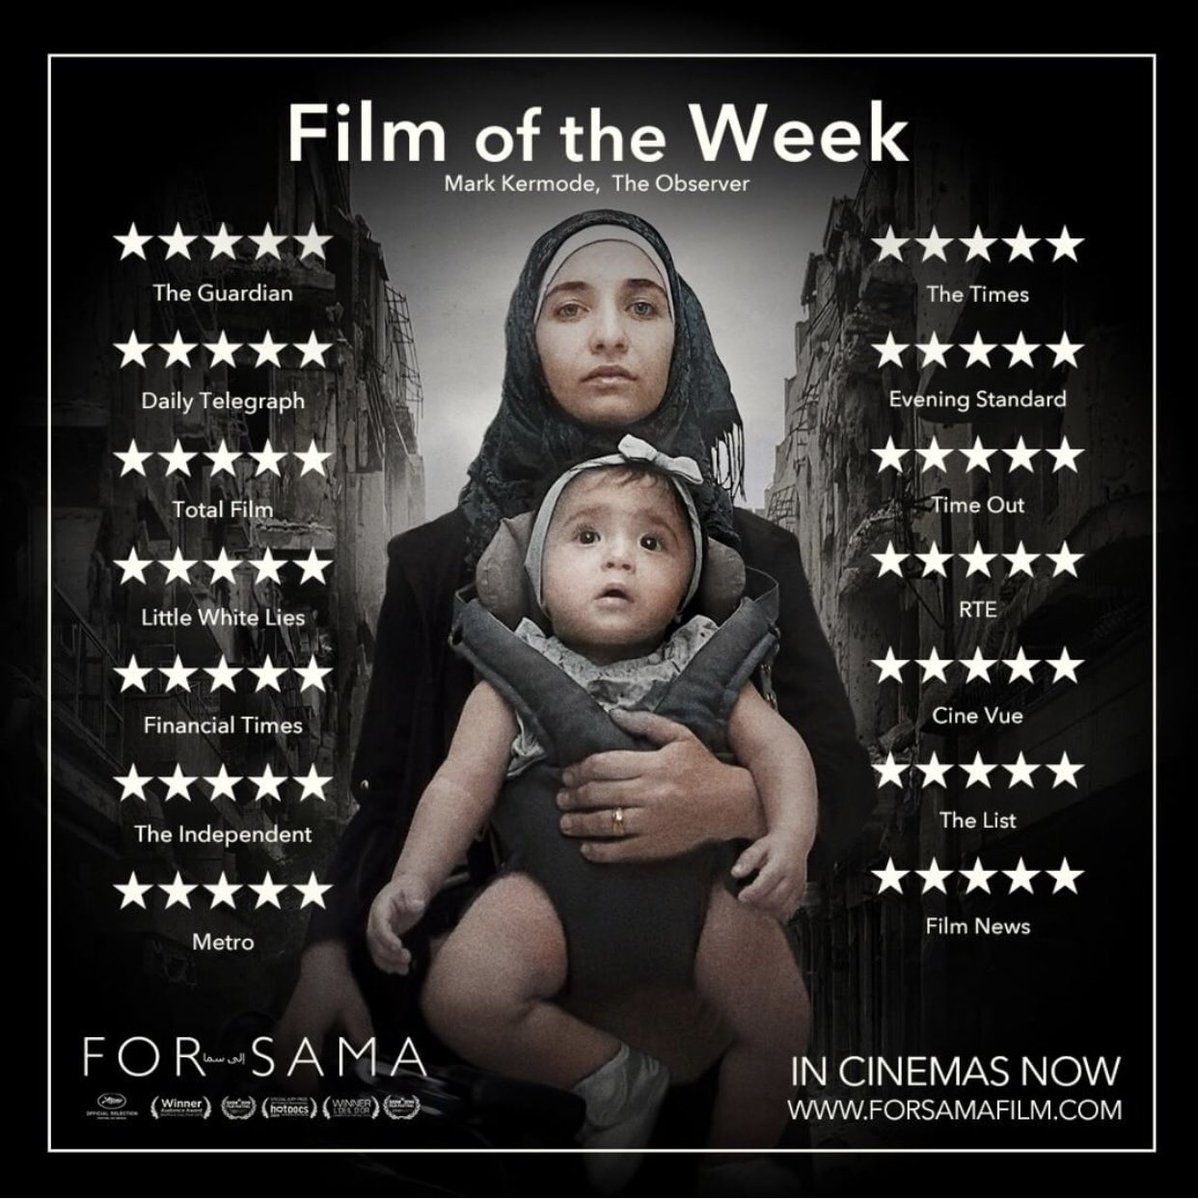 Tonight Leeds 6.20pm @HydeParkPH #ReclaimTheFrame screen @forsamafilm by @waadalkateab and @watts_edward - & A&Q with exec producer & dep. editor of @Channel4News, @NevMab and Dr Mustafa Alachkar a psychiatrist from Aleppo from @Rethink_Rebuild hydeparkpicturehouse.co.uk/film/for-sama